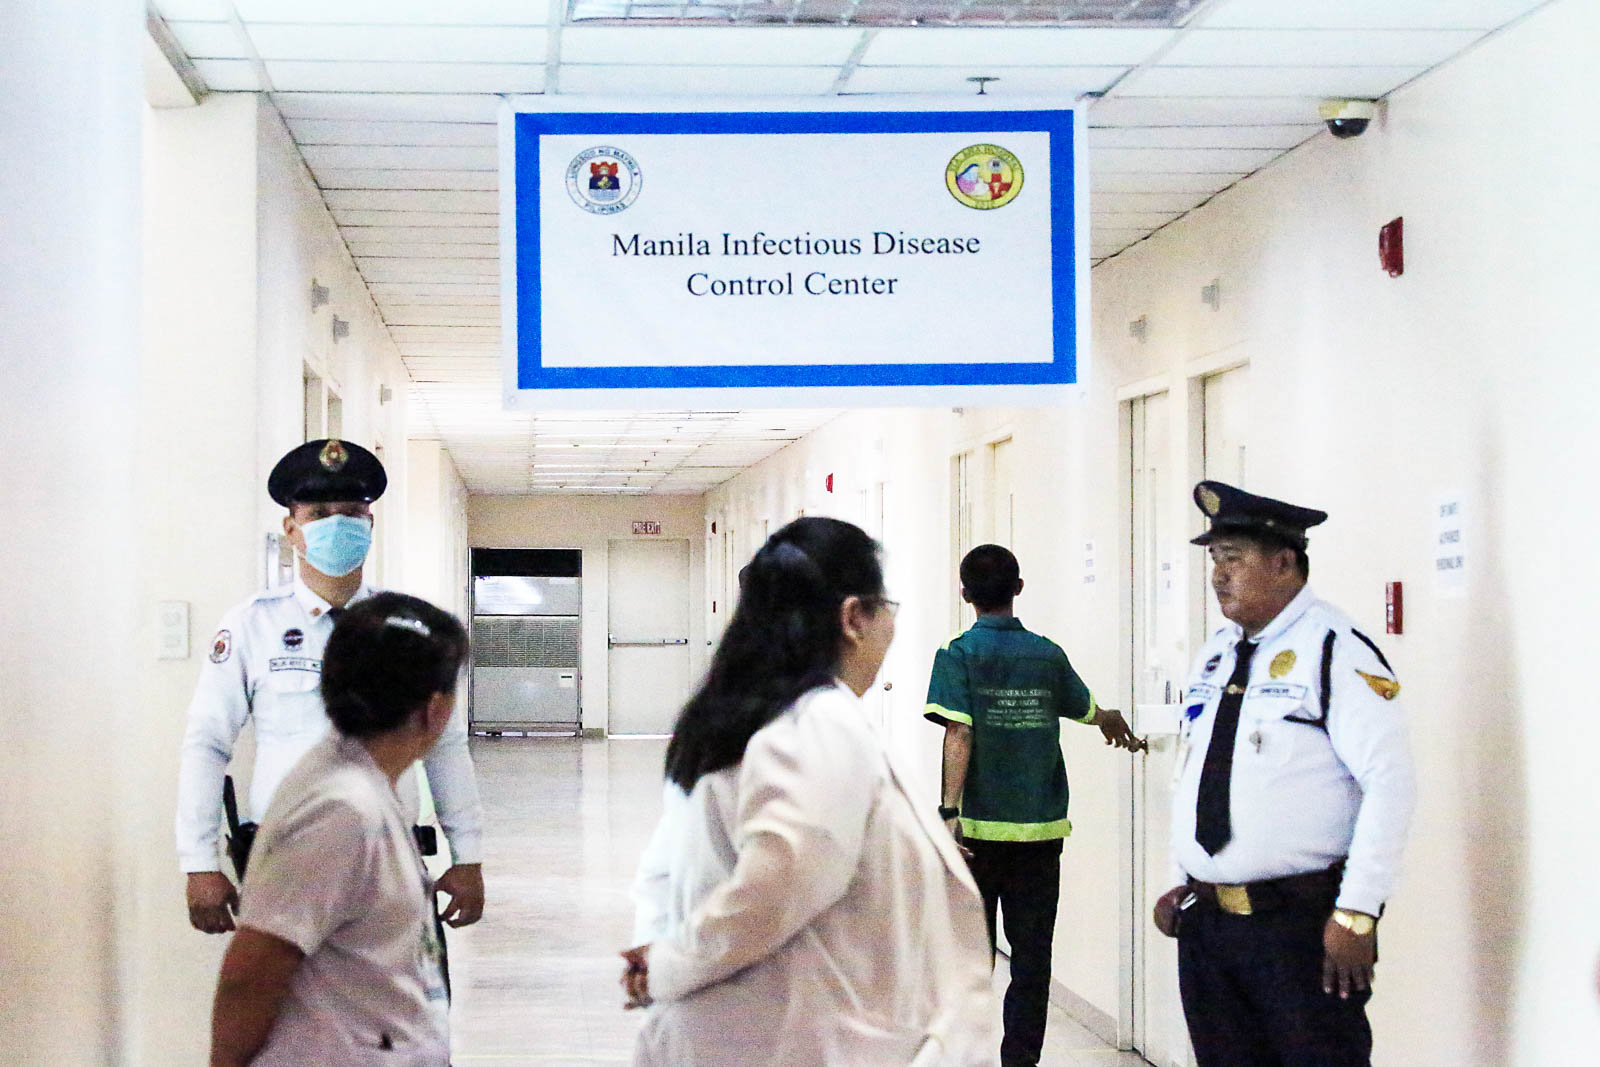 NEW FACILITY. Security personnel check on the isolation rooms intended for Patients Under Investigation (PUI) at the newly opened Manila Infectious Disease Control Center. Photo by Ben Nabong/Rappler